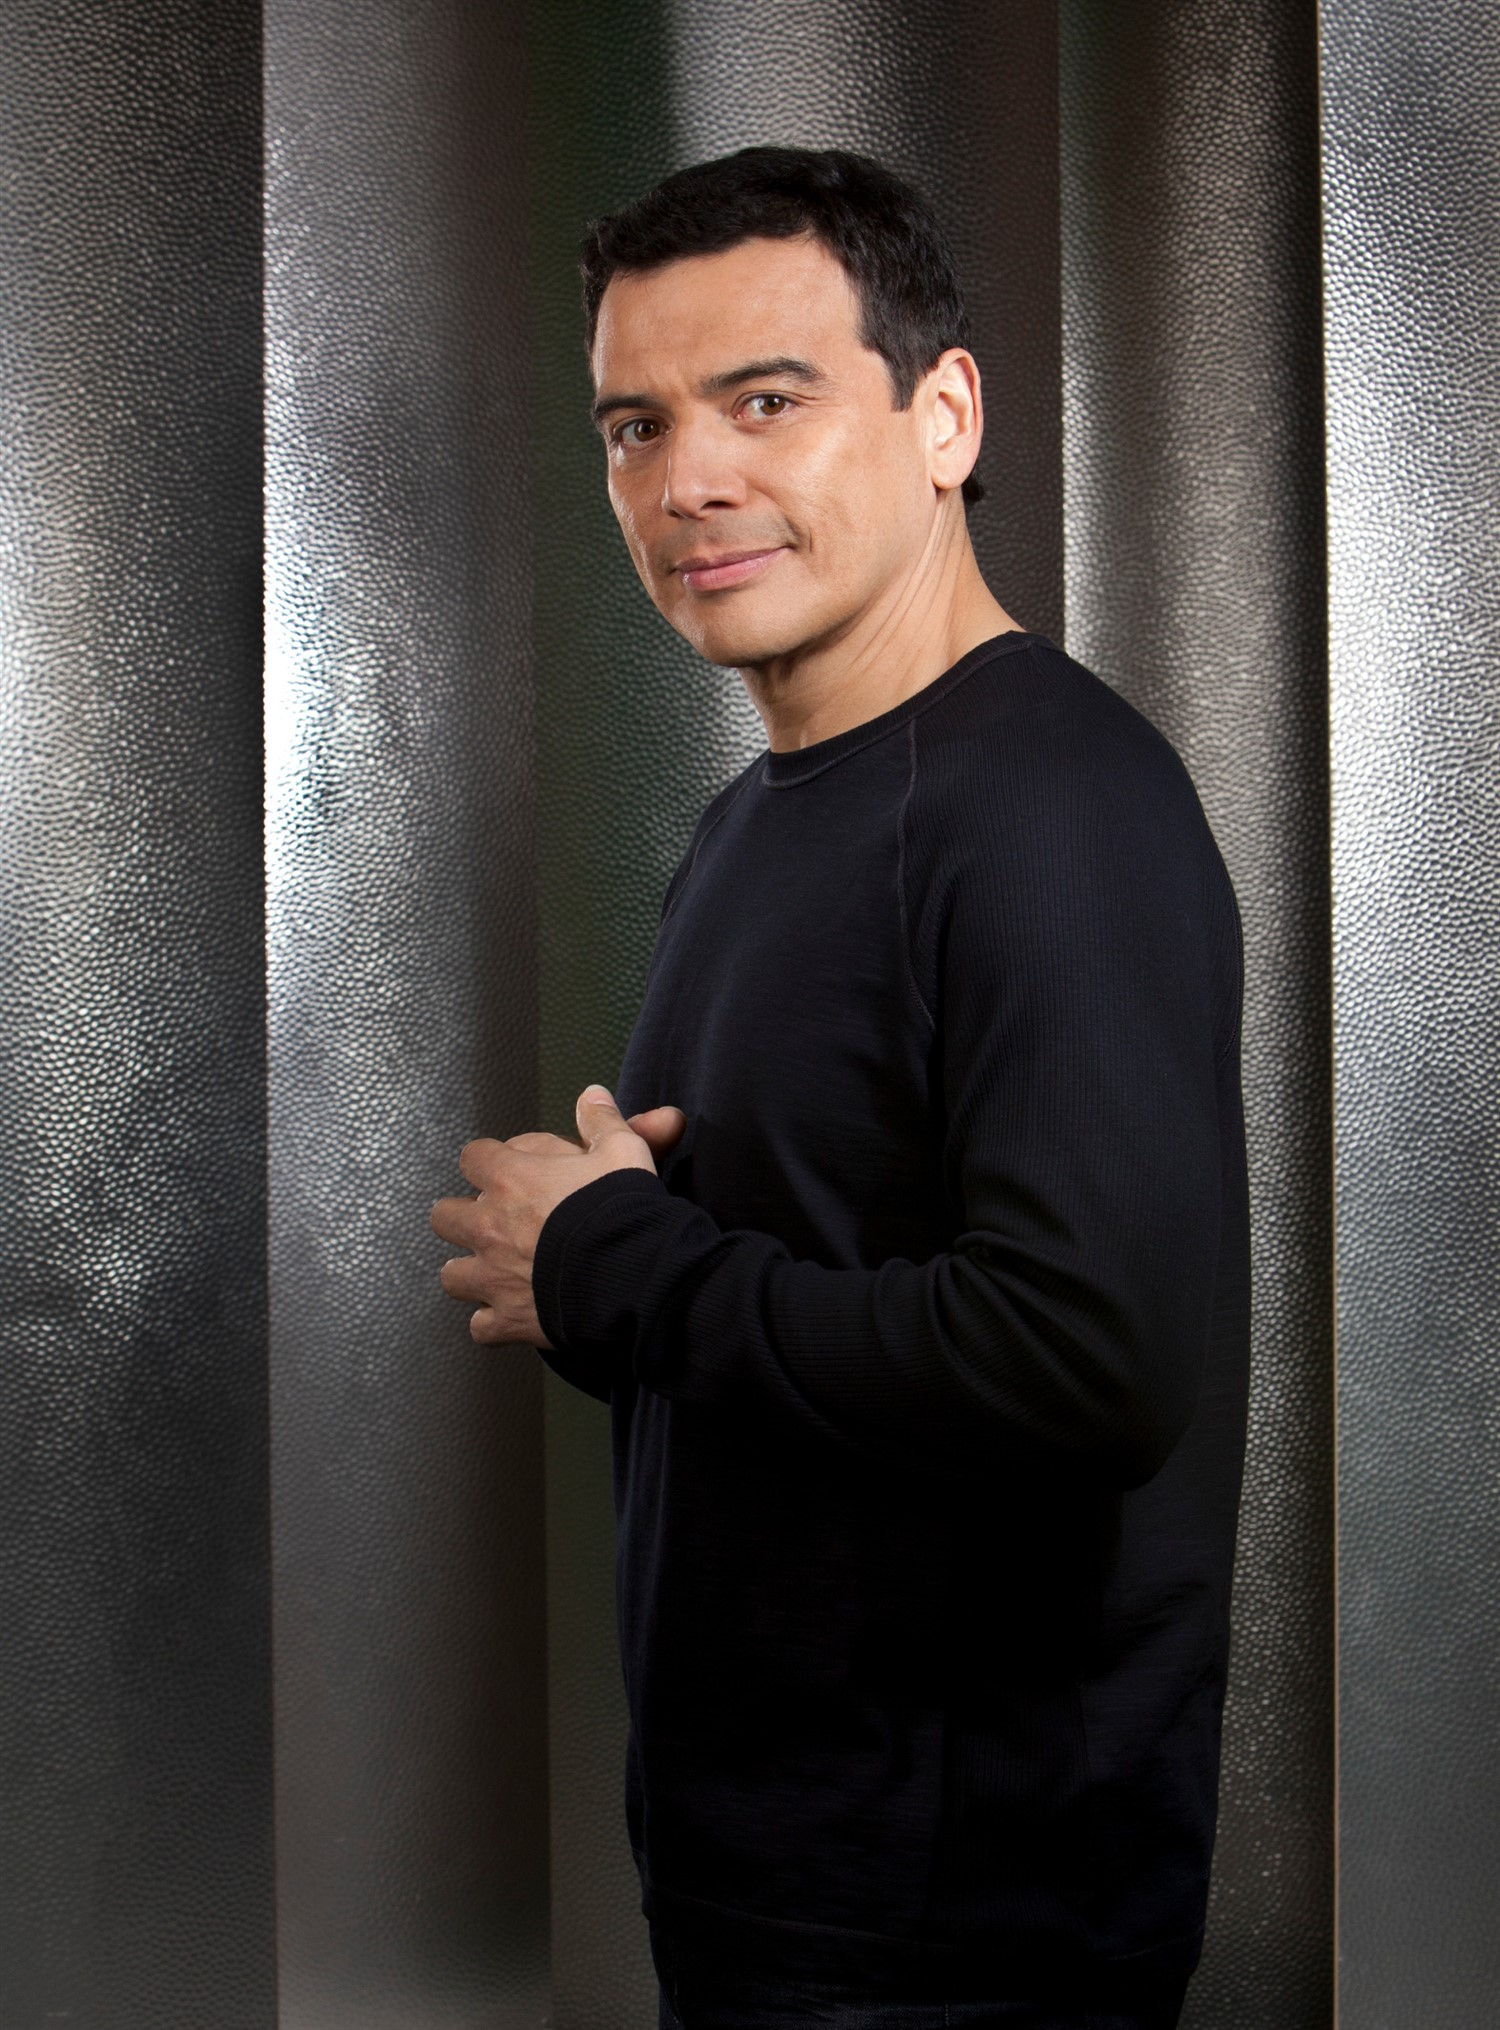 Carlos Mencia 7:30 Show Headliner on Jan 11, 19:30@Funny Stop Comedy Club - Buy tickets and Get information on Funny Stop funnystop.online